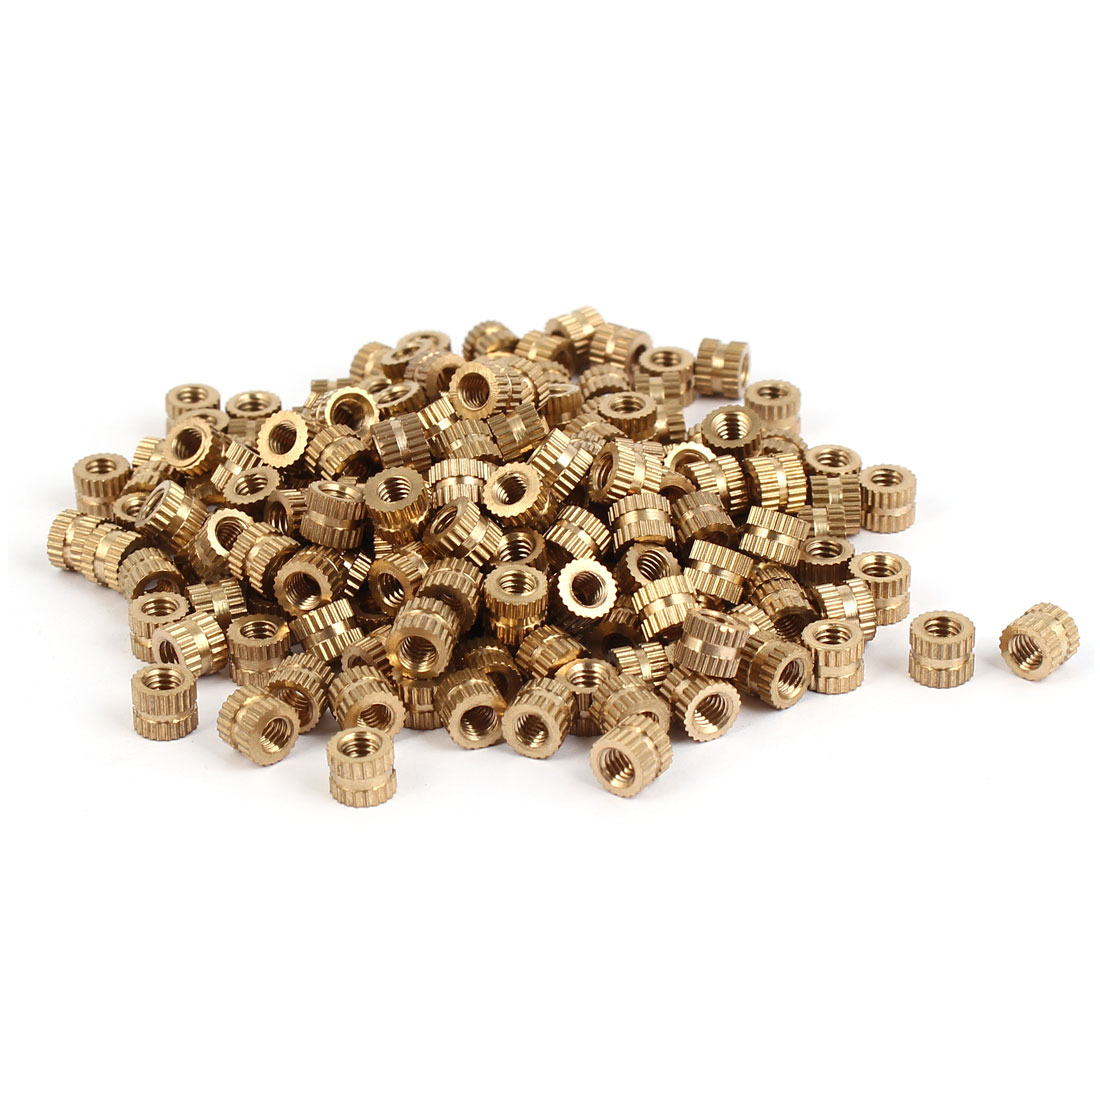 M4 x 5mm Brass Cylindrical Knurled Threaded Round Insert Embedded Nuts 200PCS